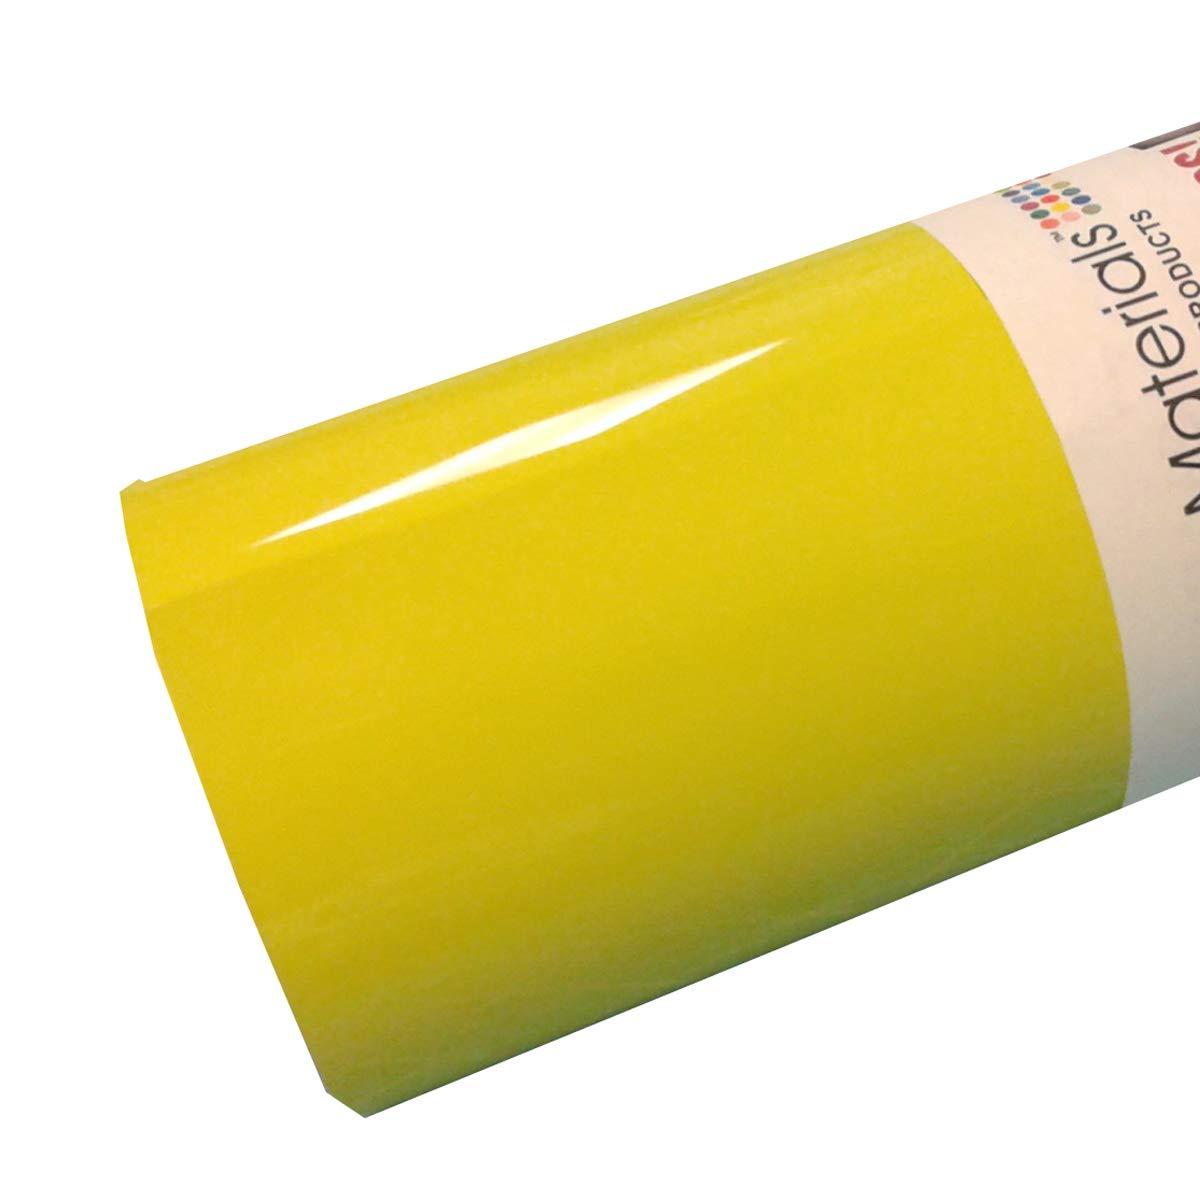 ThermoFlex Plus 15'' x 10' Roll Lemon Yellow Heat Transfer Vinyl